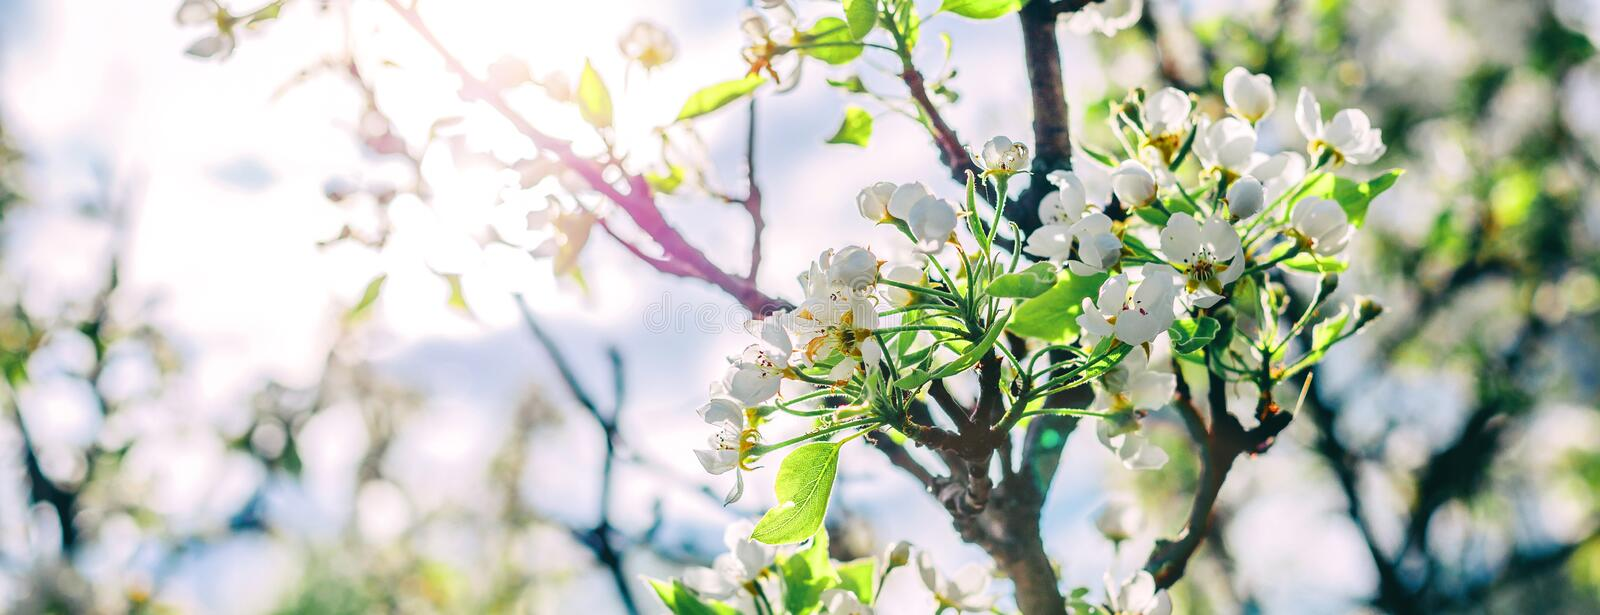 Blossom tree over nature background. Beautiful nature scene with blooming tree, sun and snow. Easter Sunny day. Spring flowers. Springtime. Selective focus stock photos